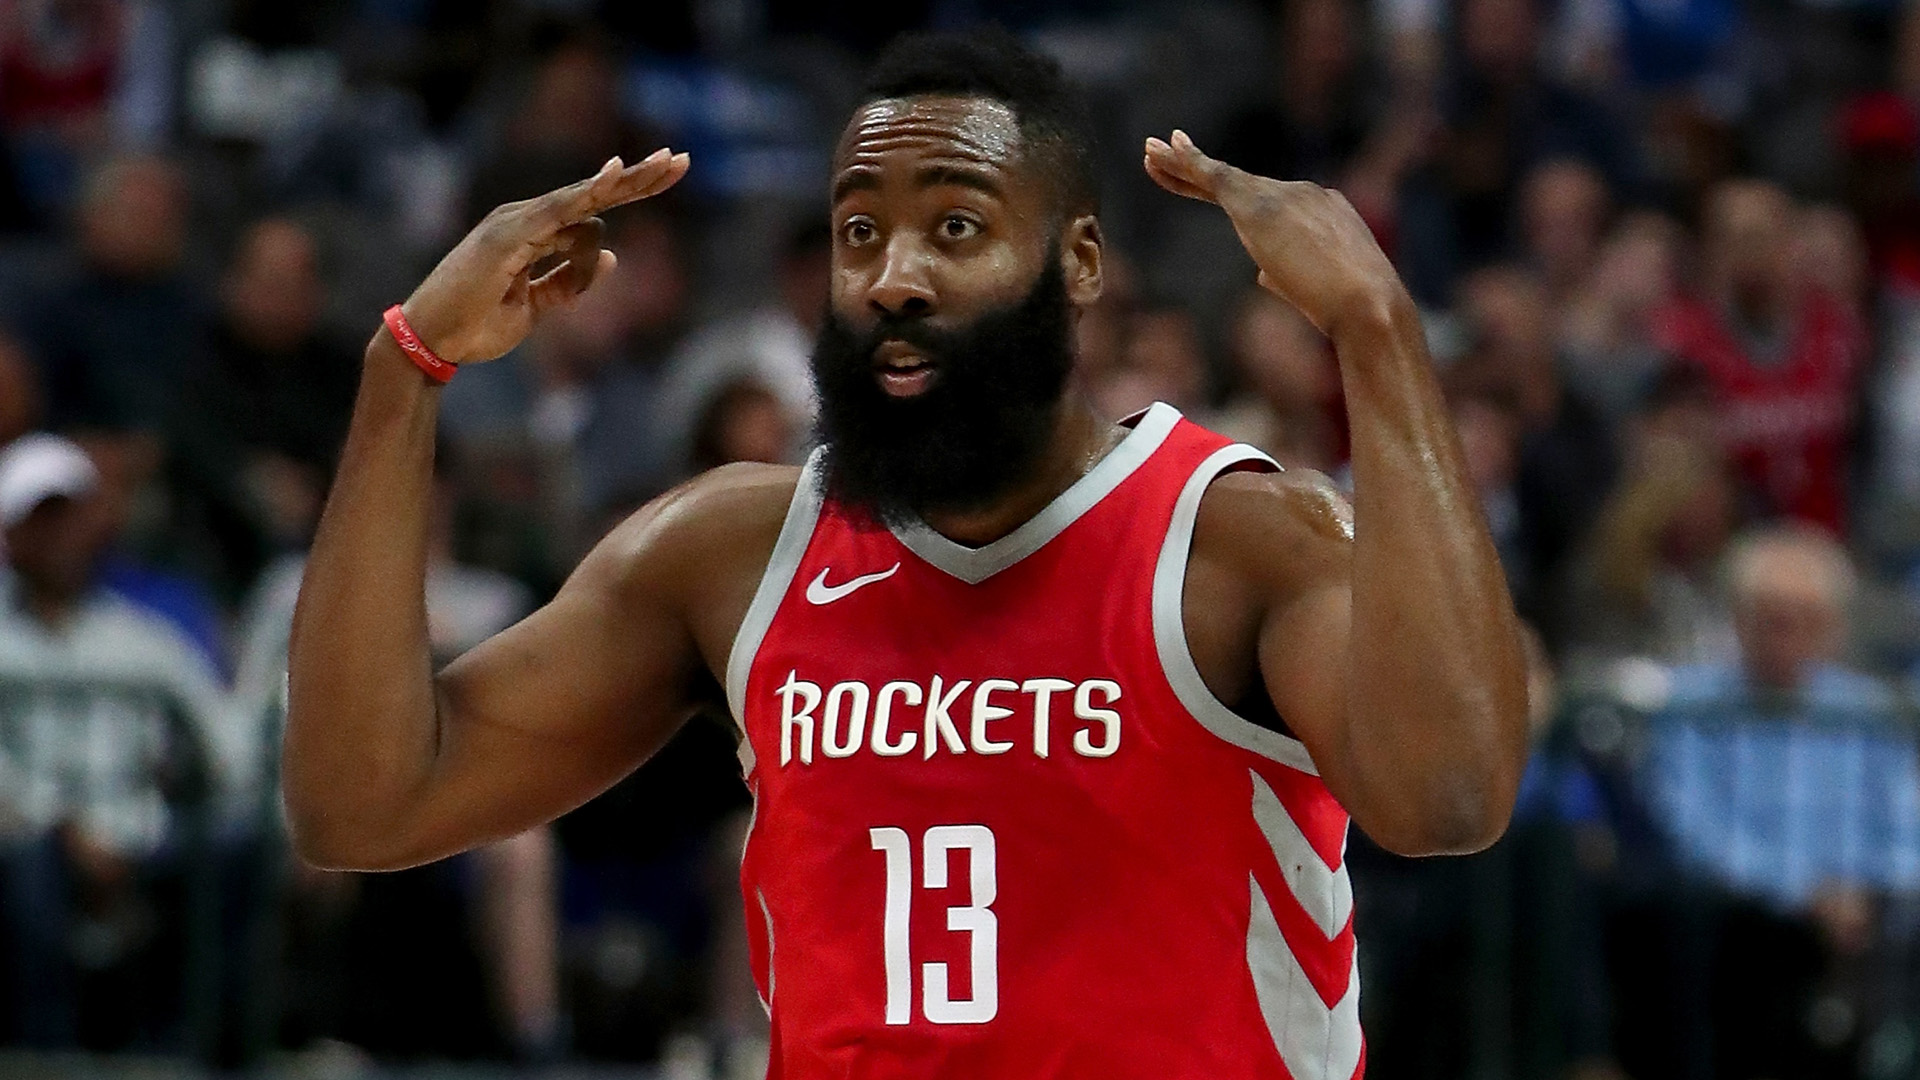 The Houston Rockets extended their winning streak in the NBA, beating the Boston Celtics.